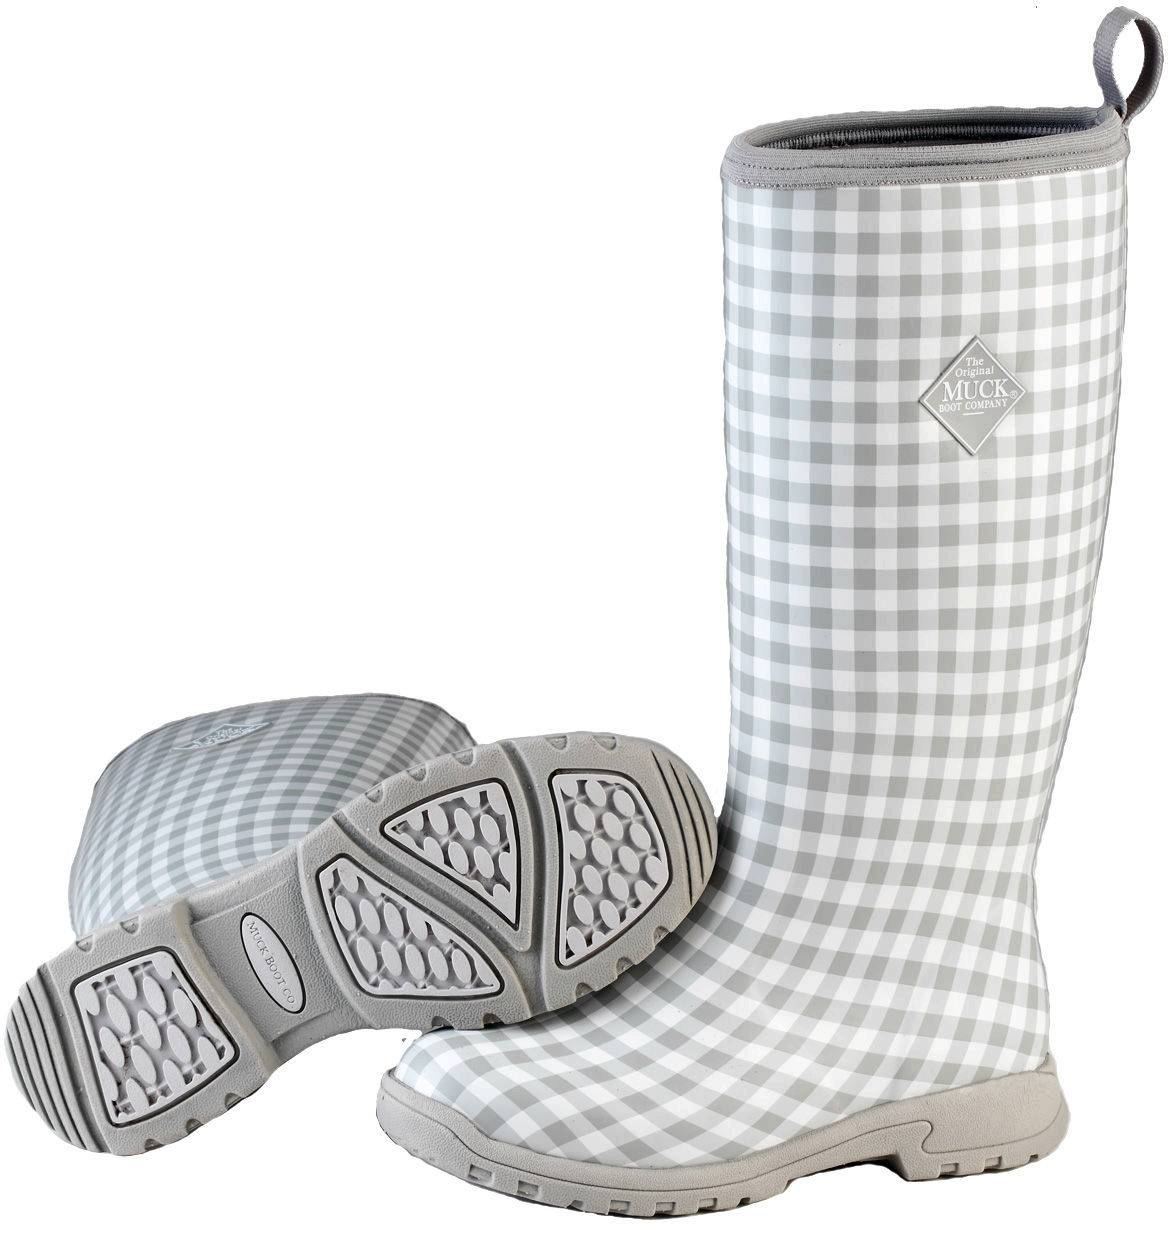 Muck Boots Breezy Tall